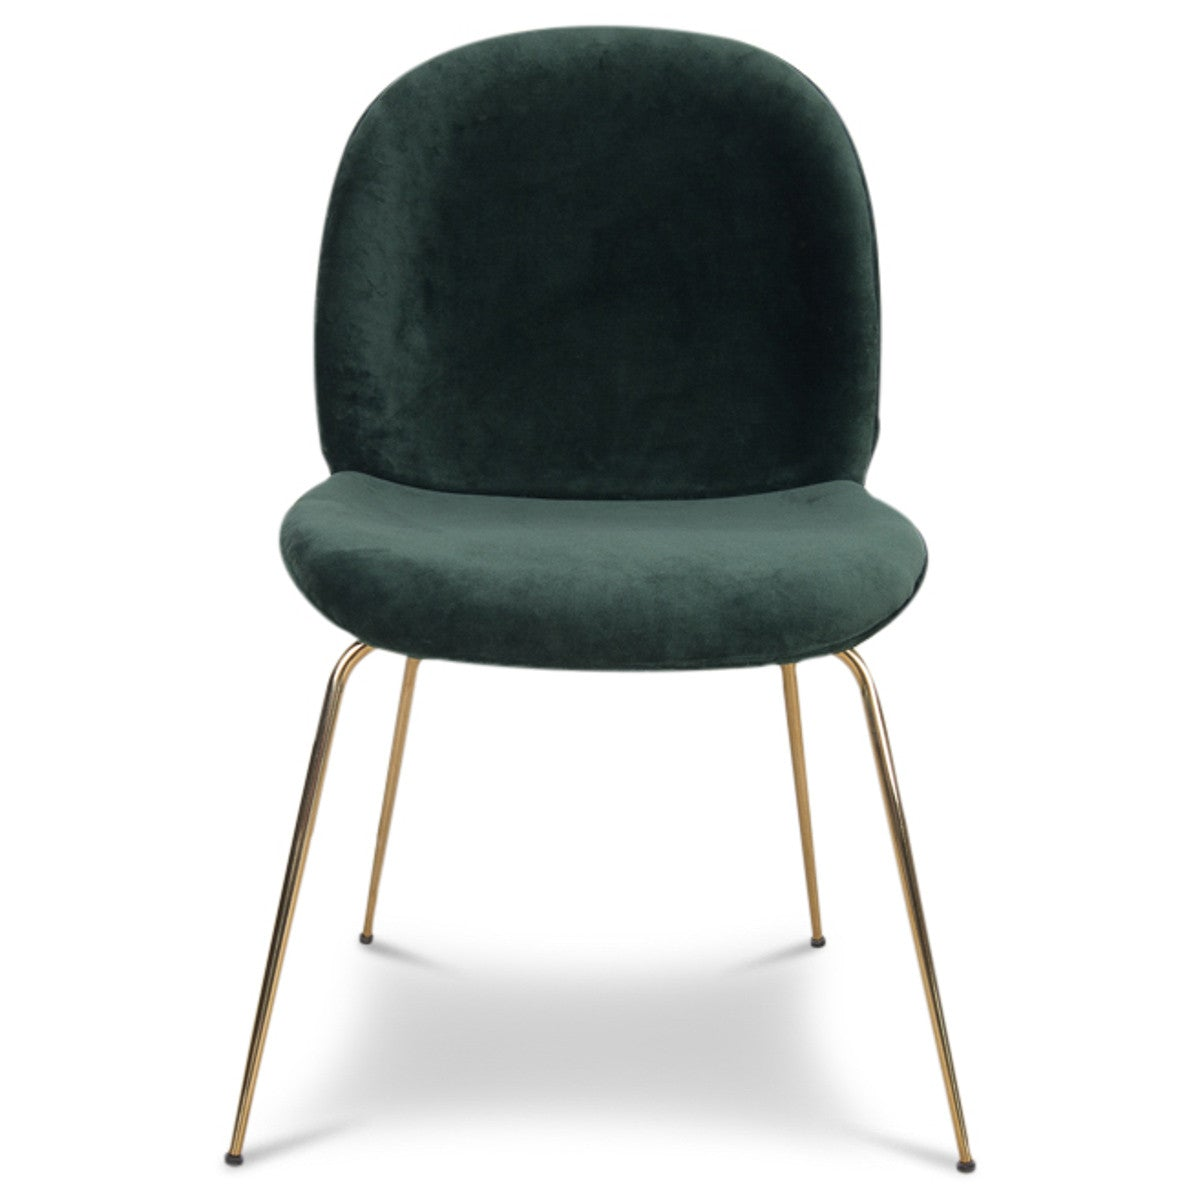 Amalfi Dining Chair in Velvet - ModShop1.com